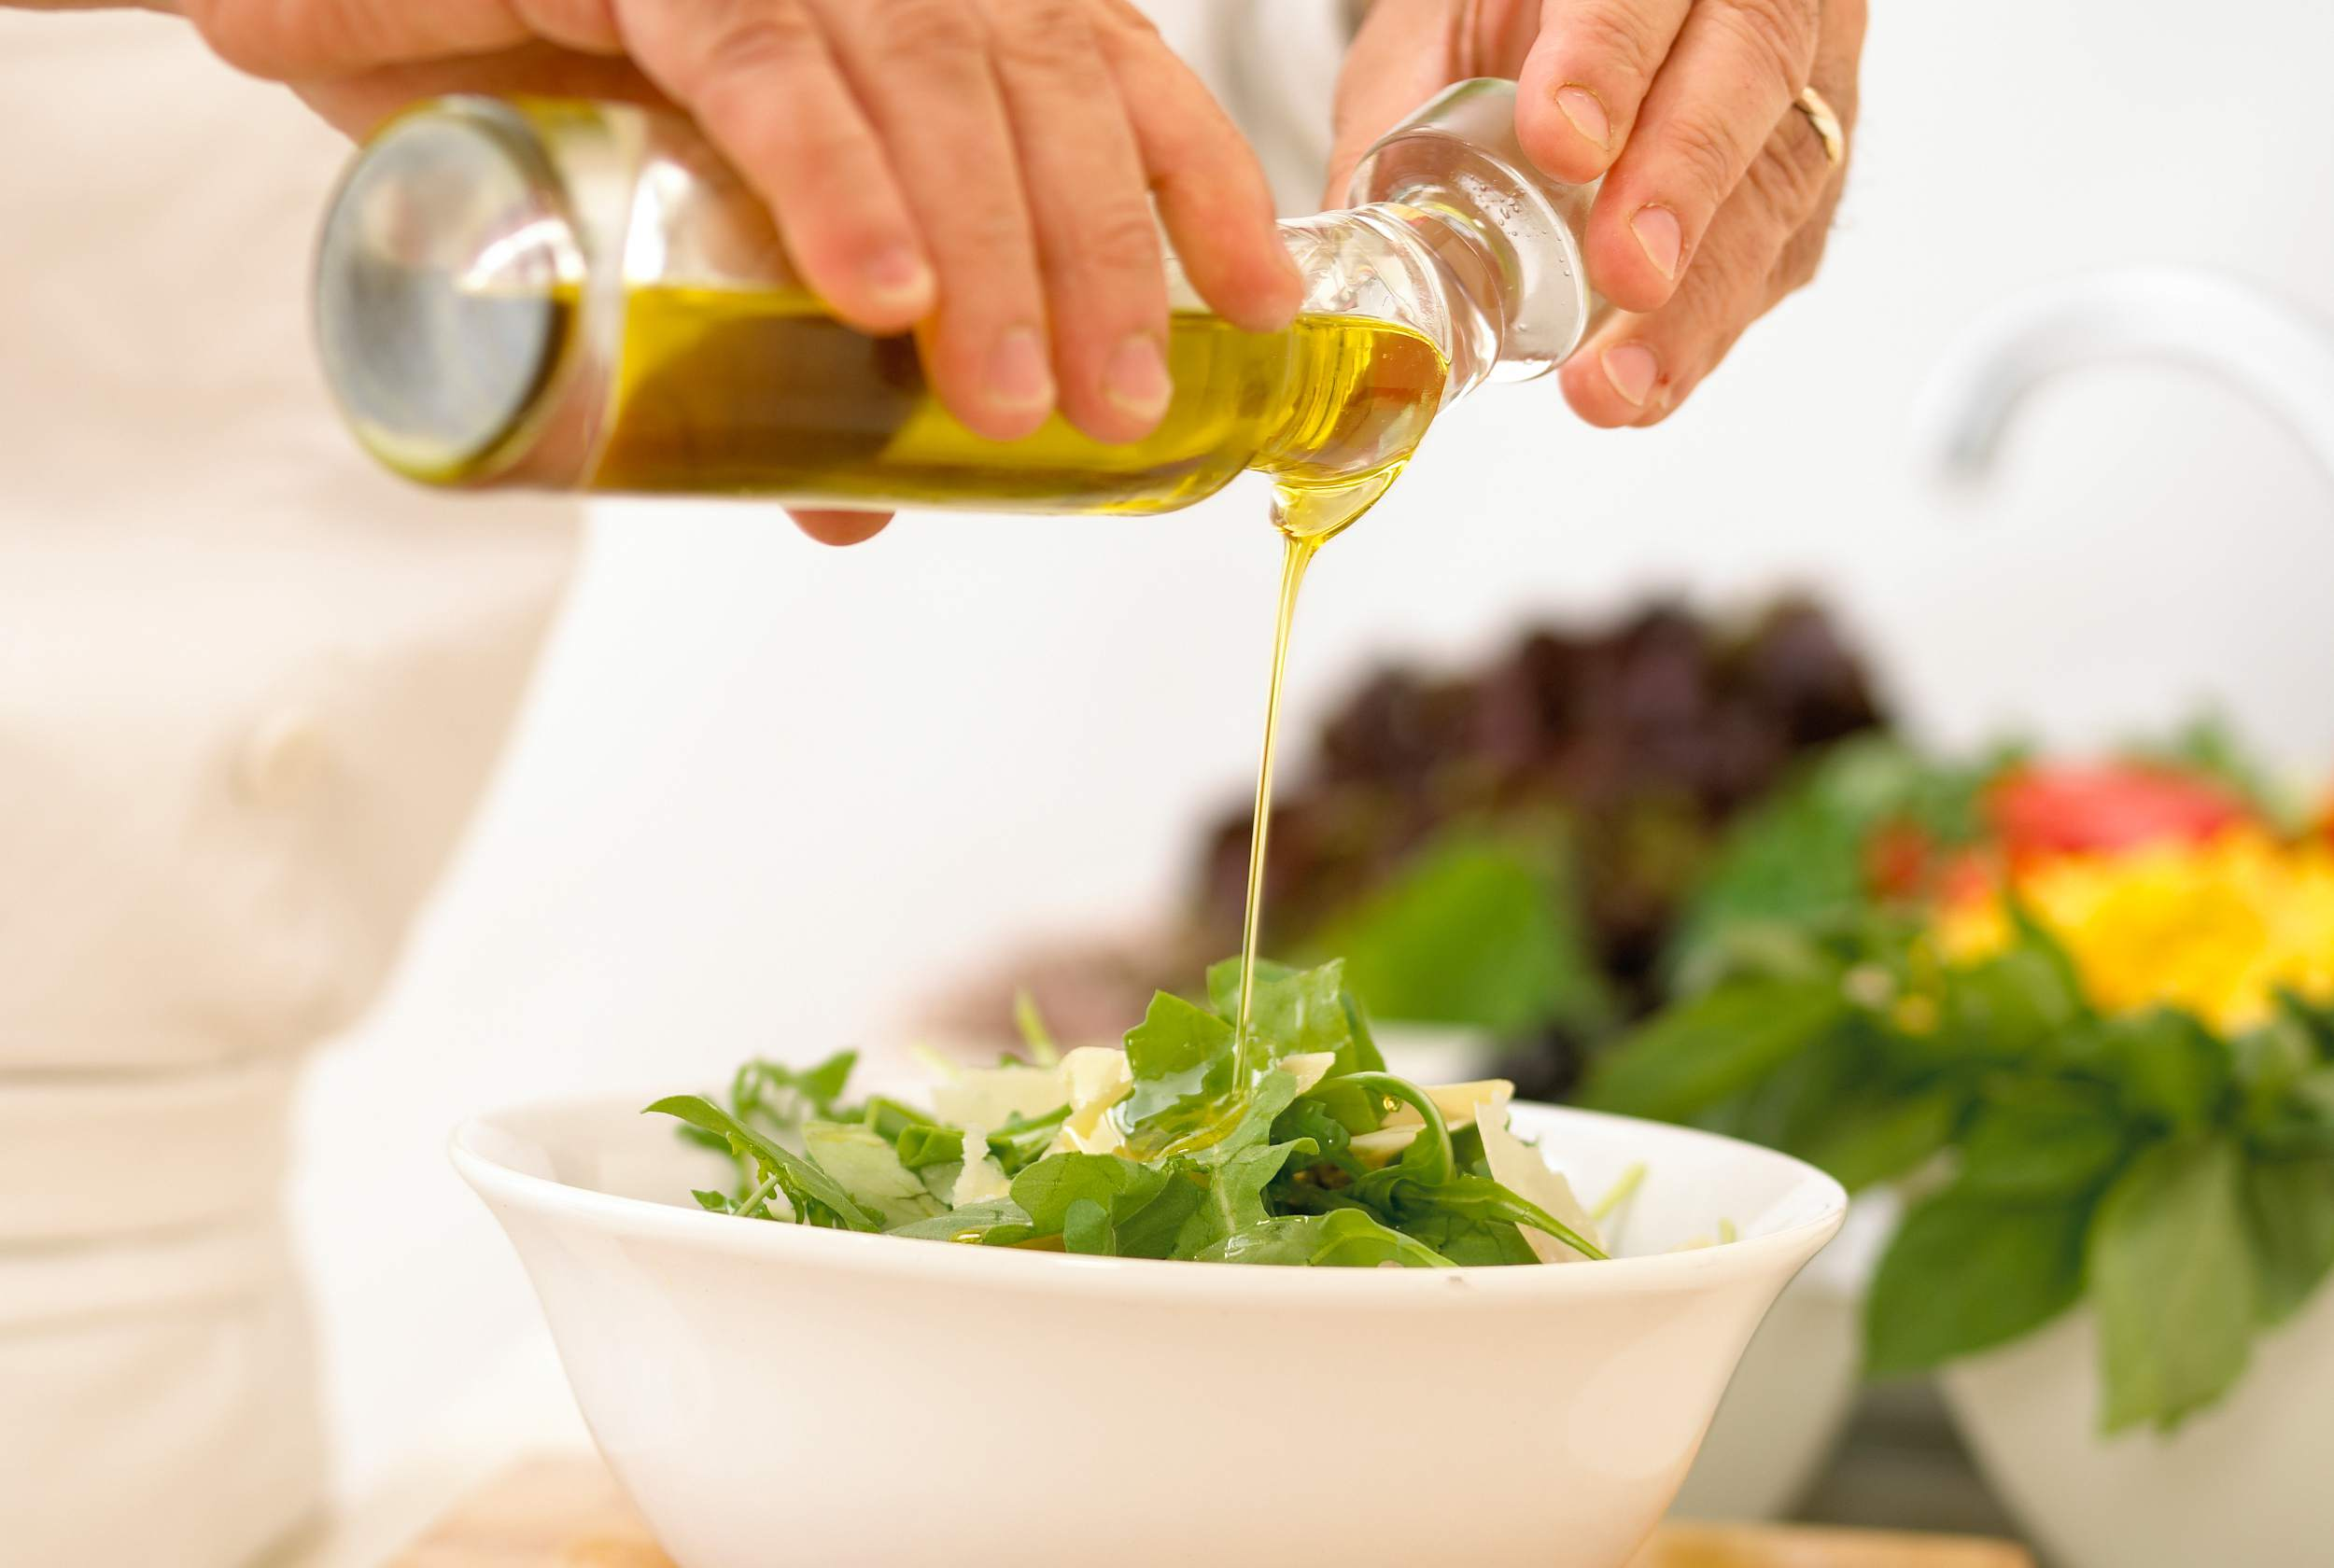 Pouring dressing over salad